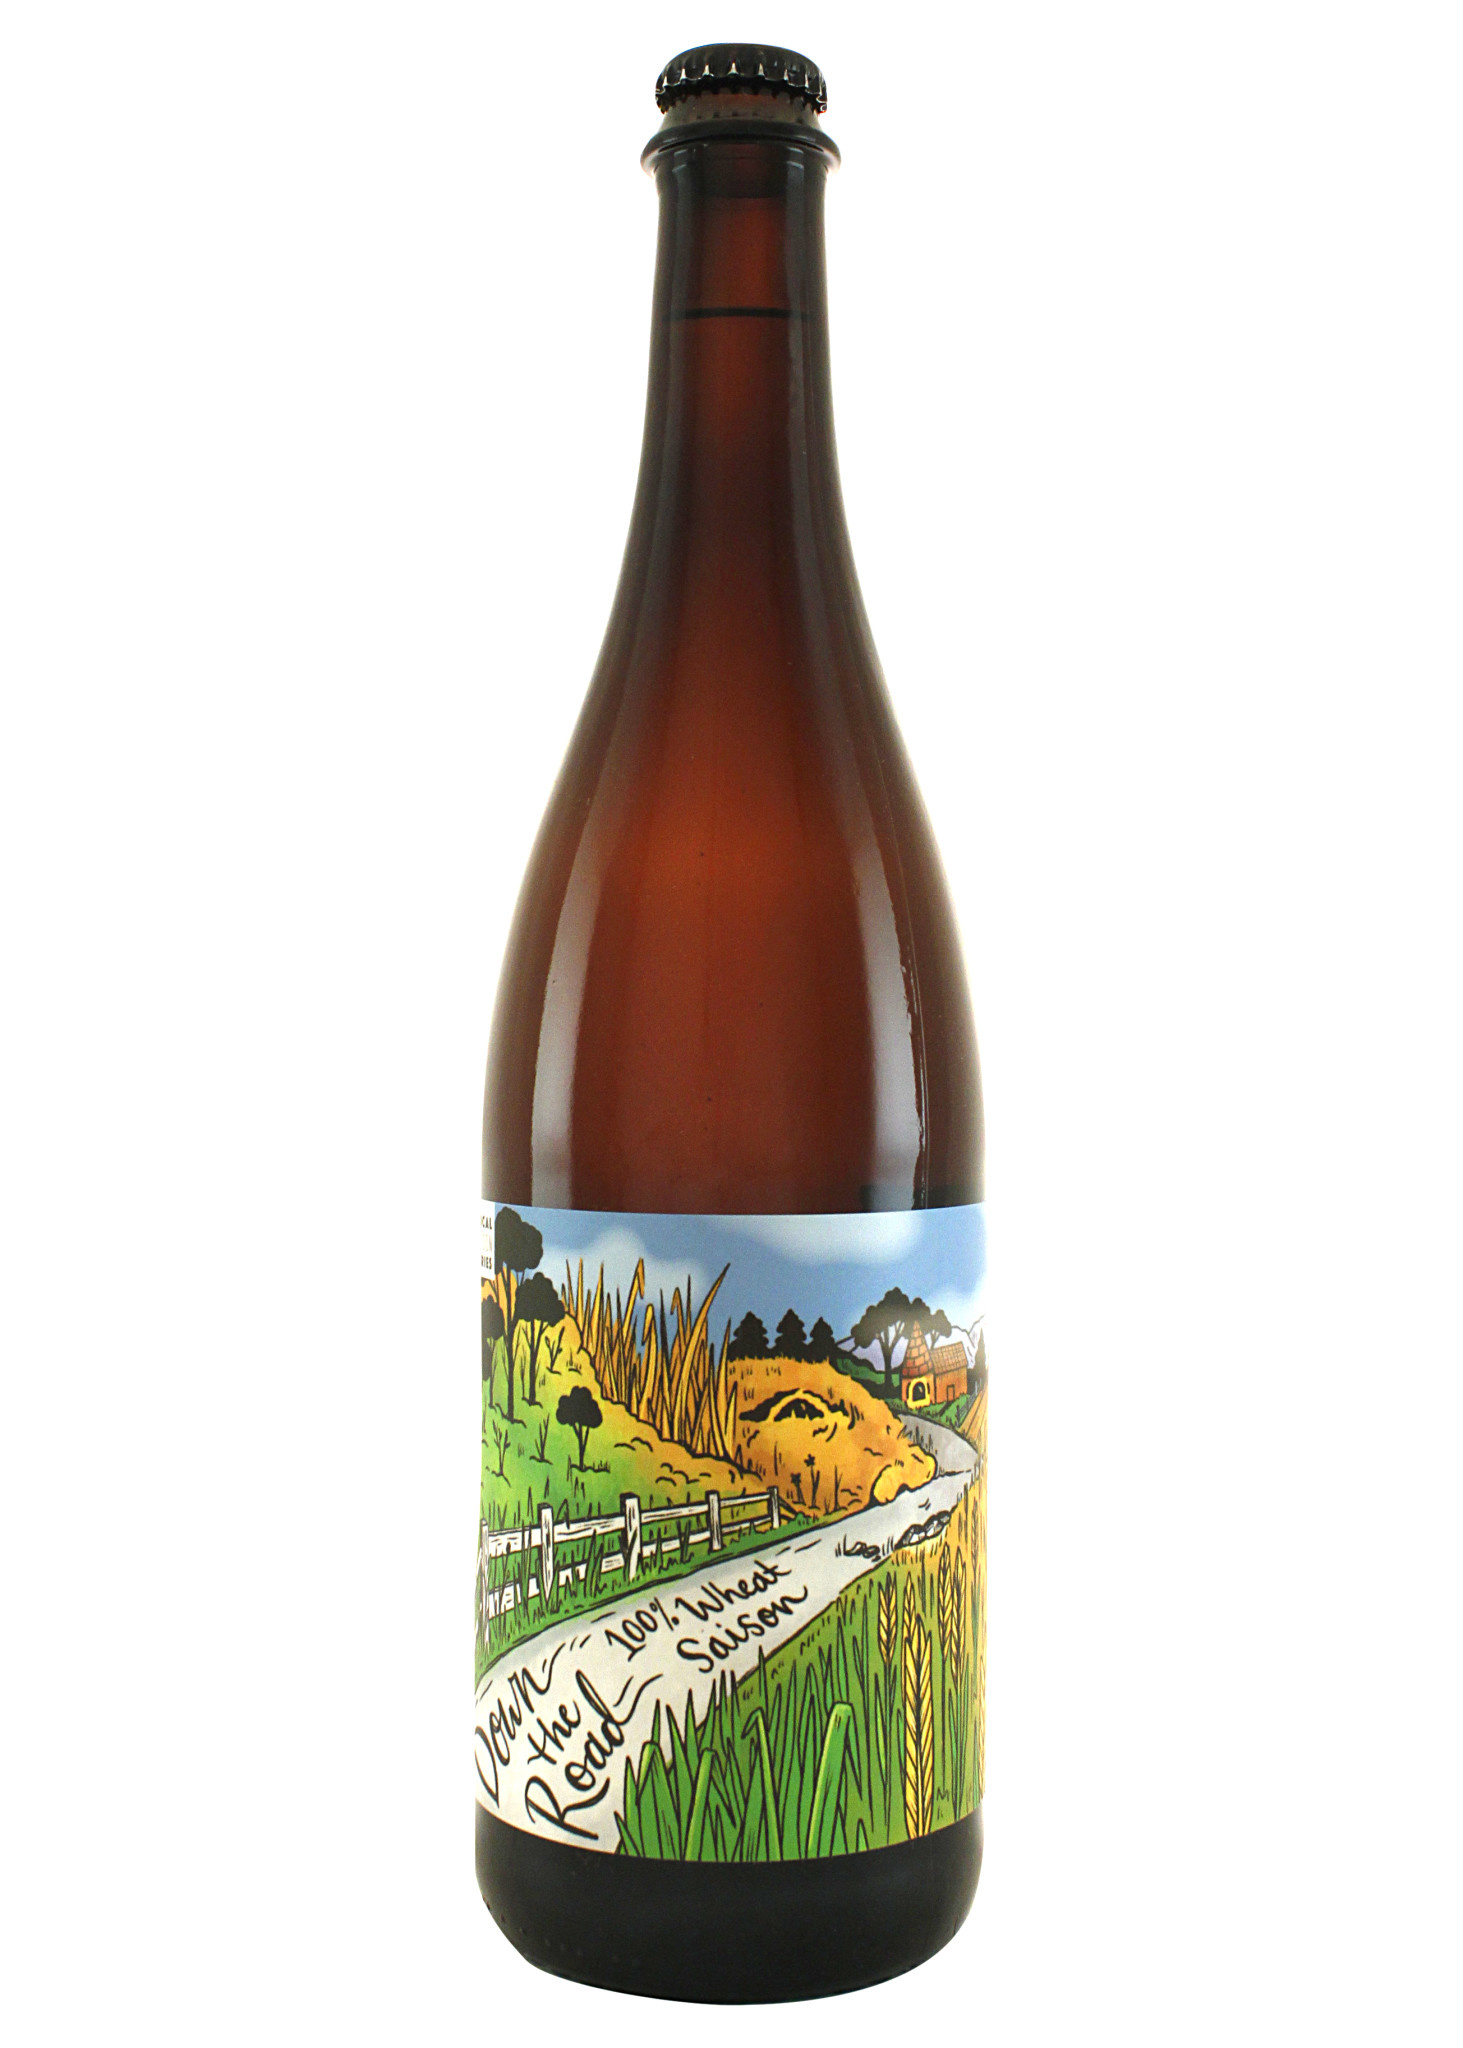 "Urban Roots ""Down The Road"" Wheat Saison 765ml bottle-Sacramento, CA"